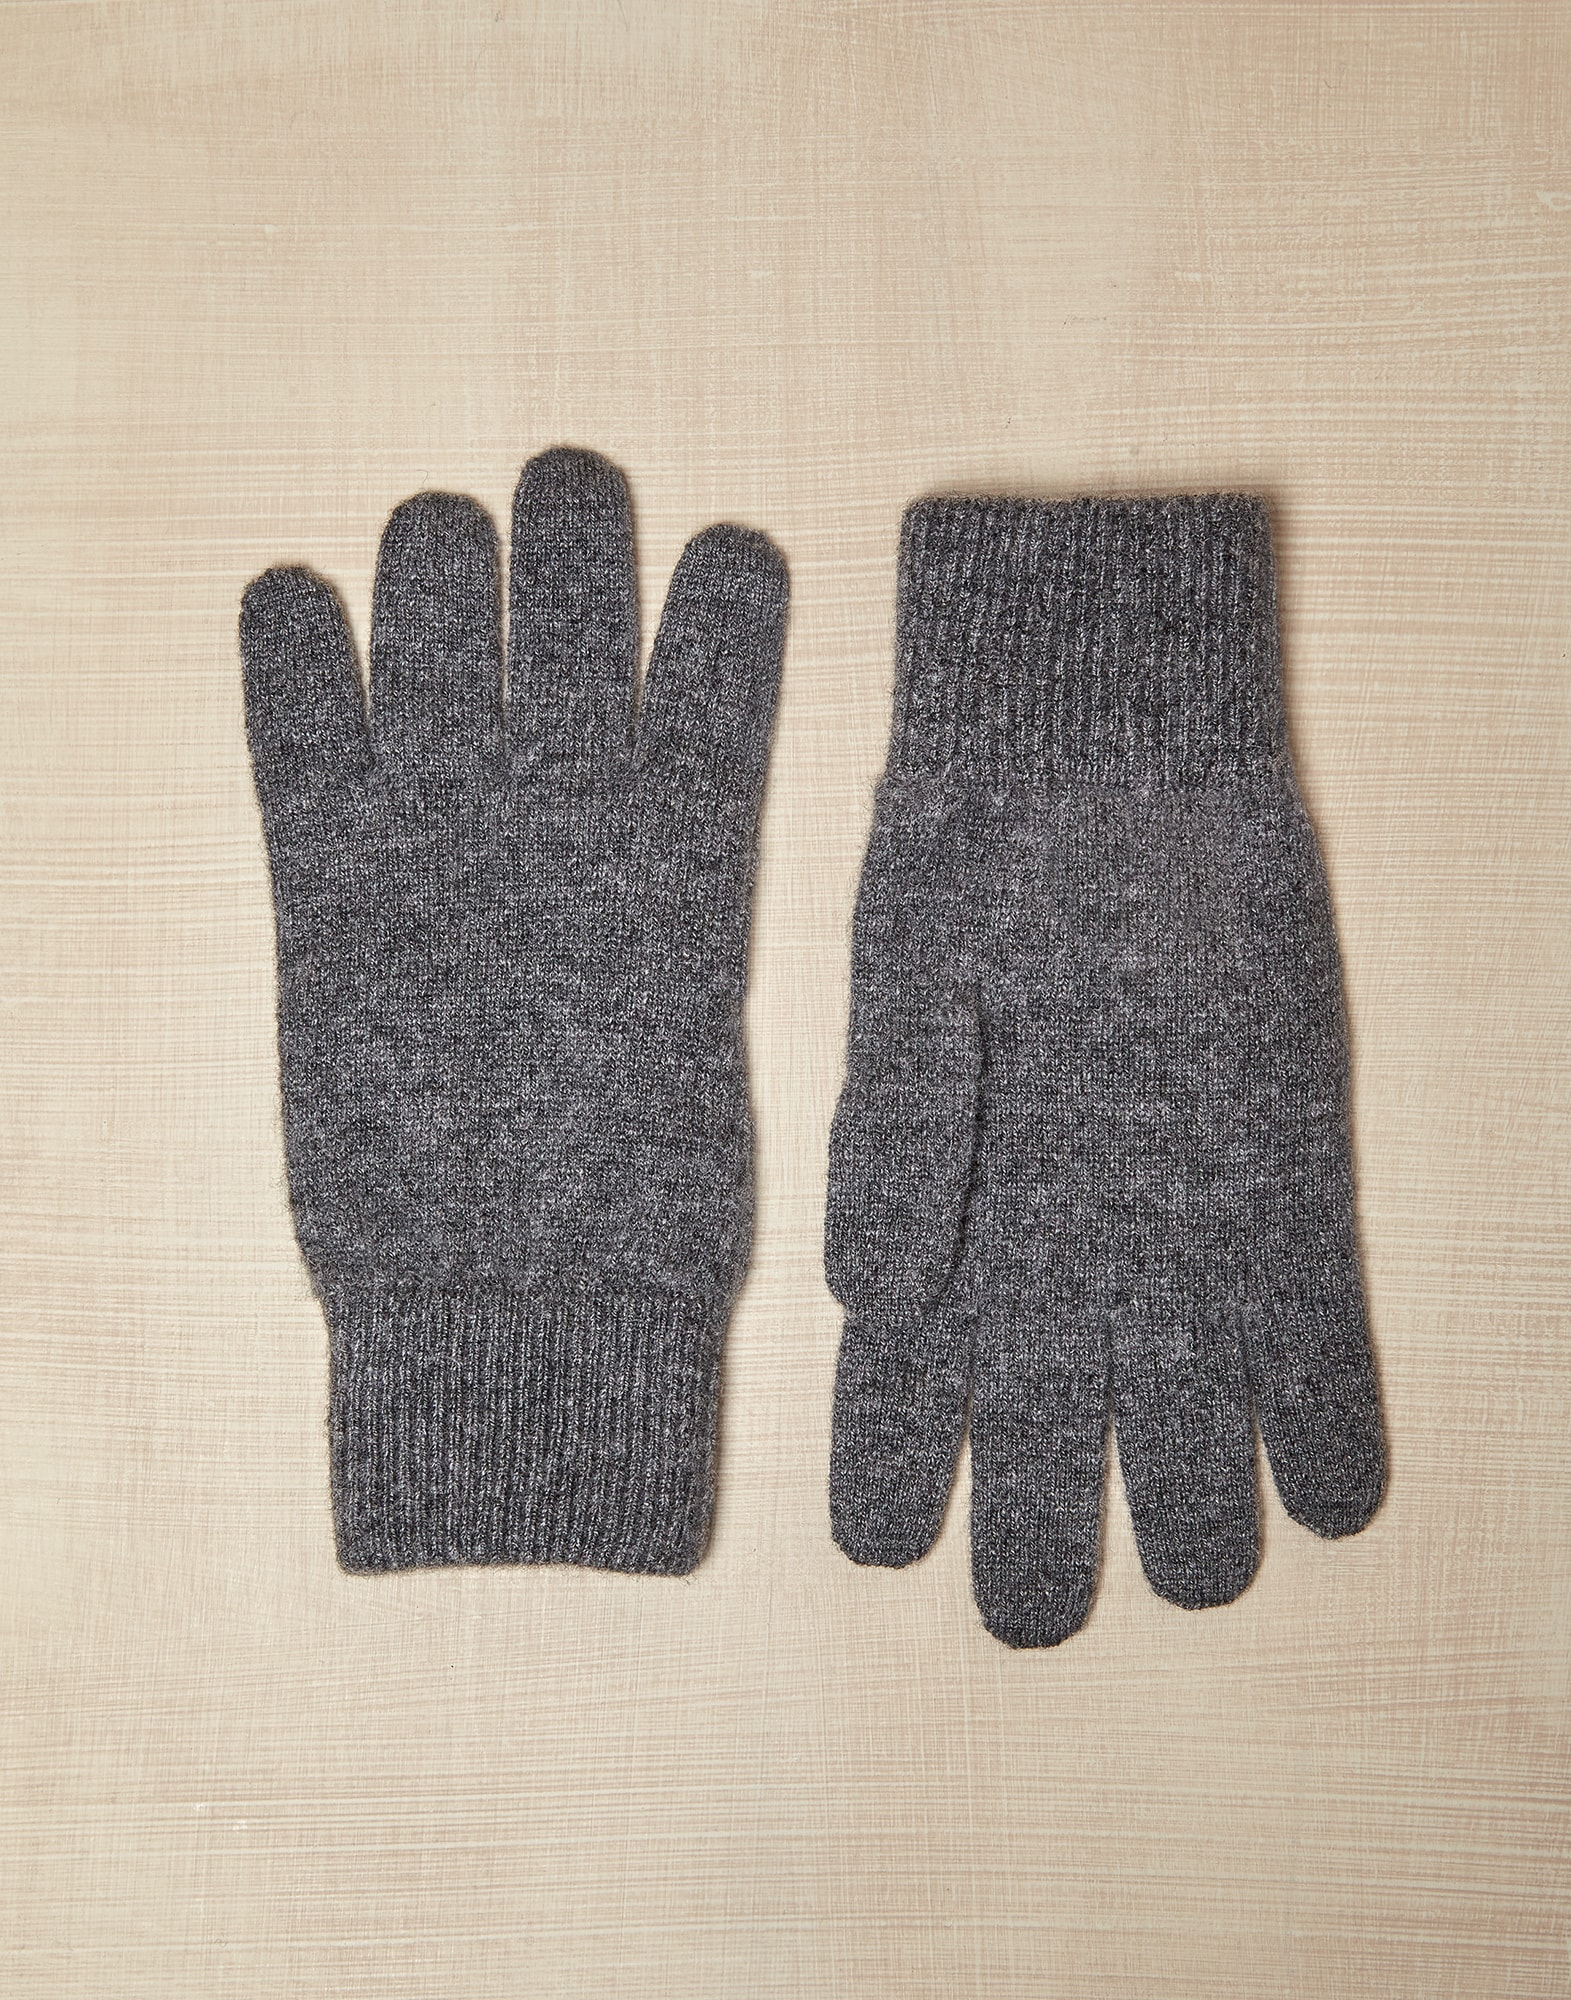 Gloves & Hats - Front view